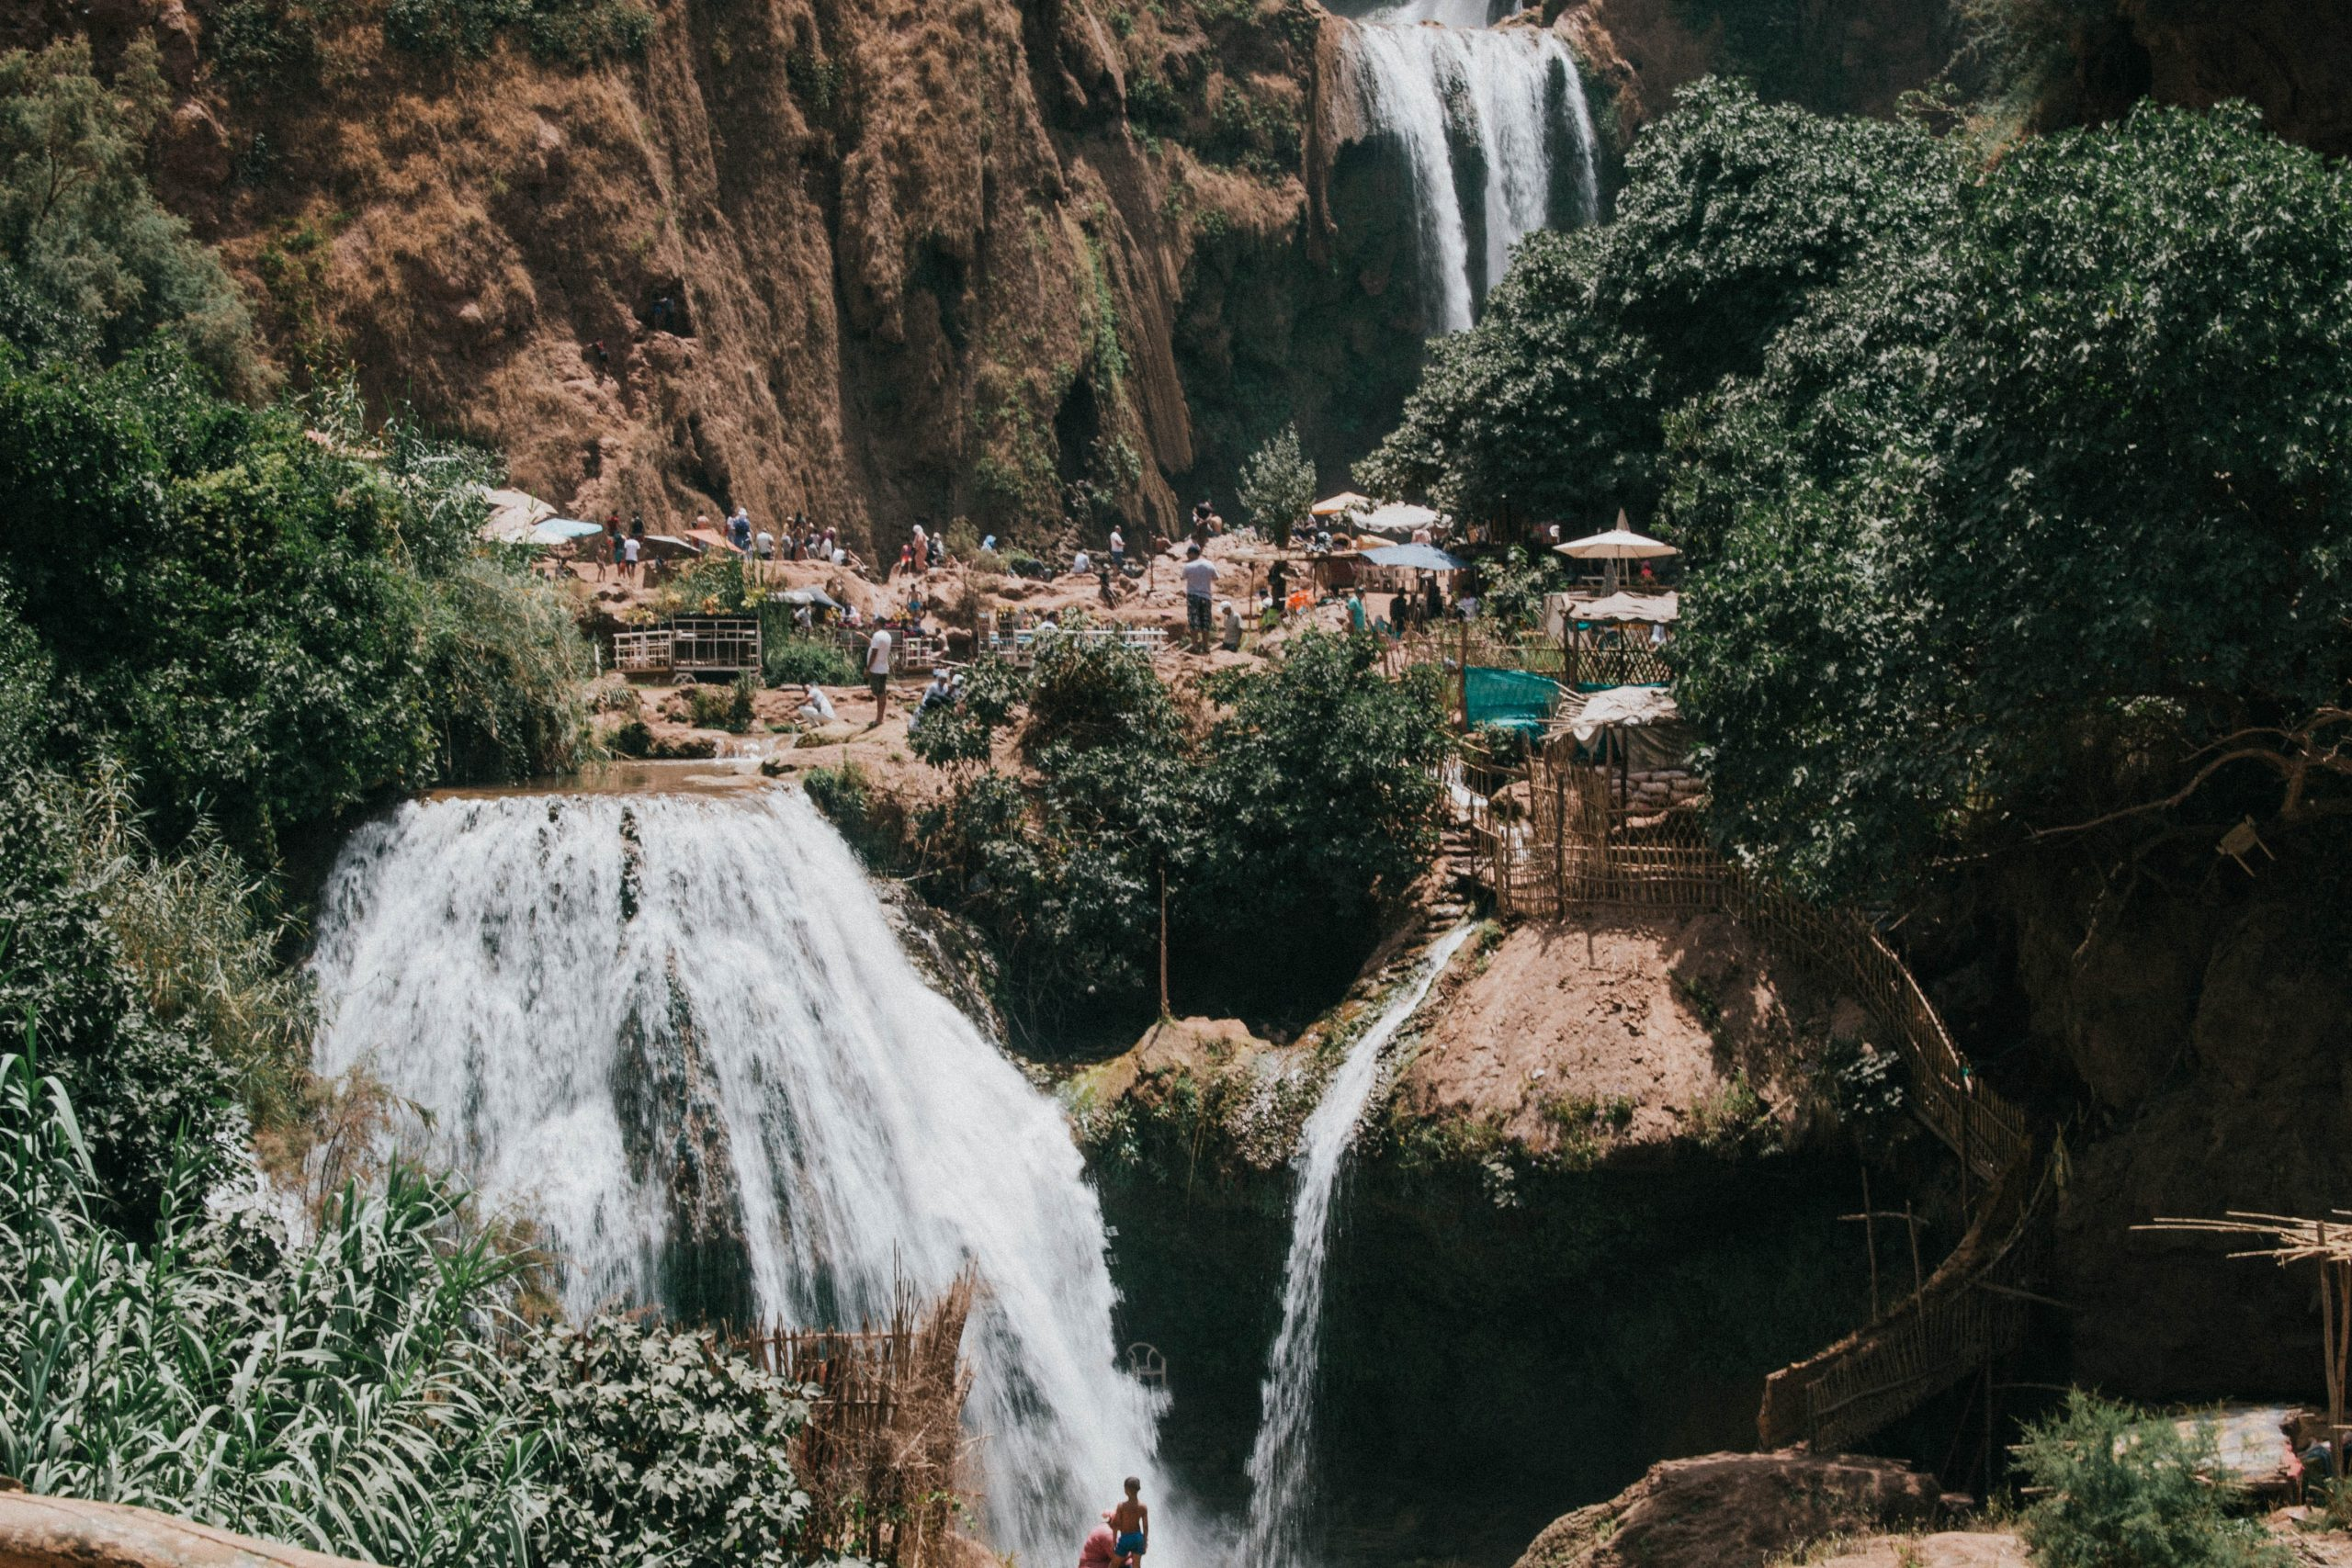 gallery image for 1 Day Private Trip Ouzoud Waterfalls From Marrakech